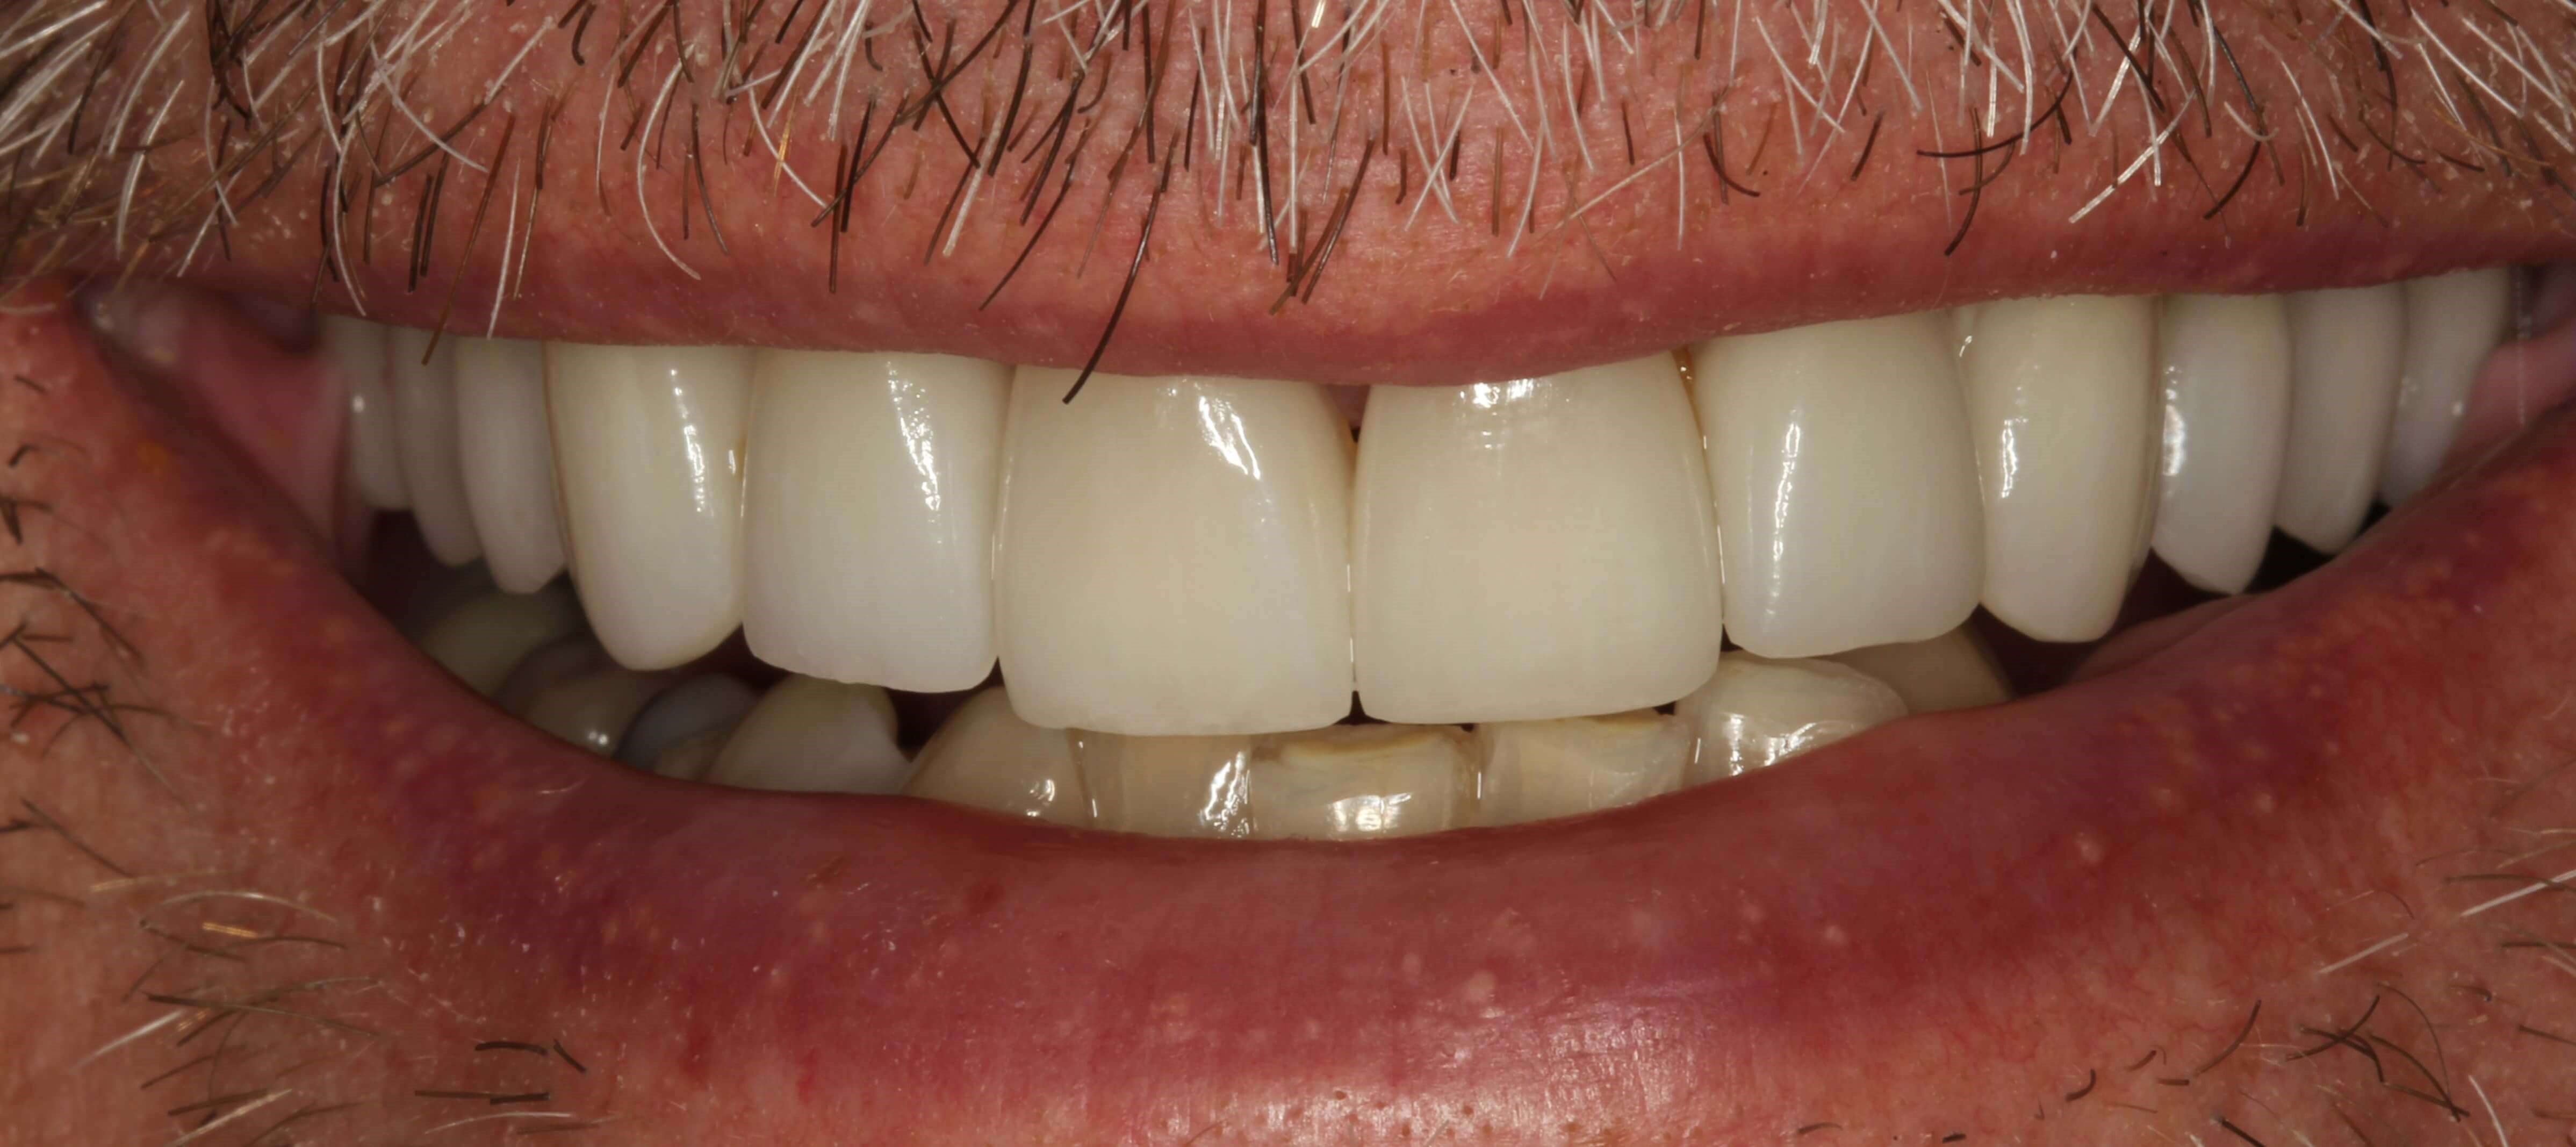 Porcelain Crowns and Veneers After